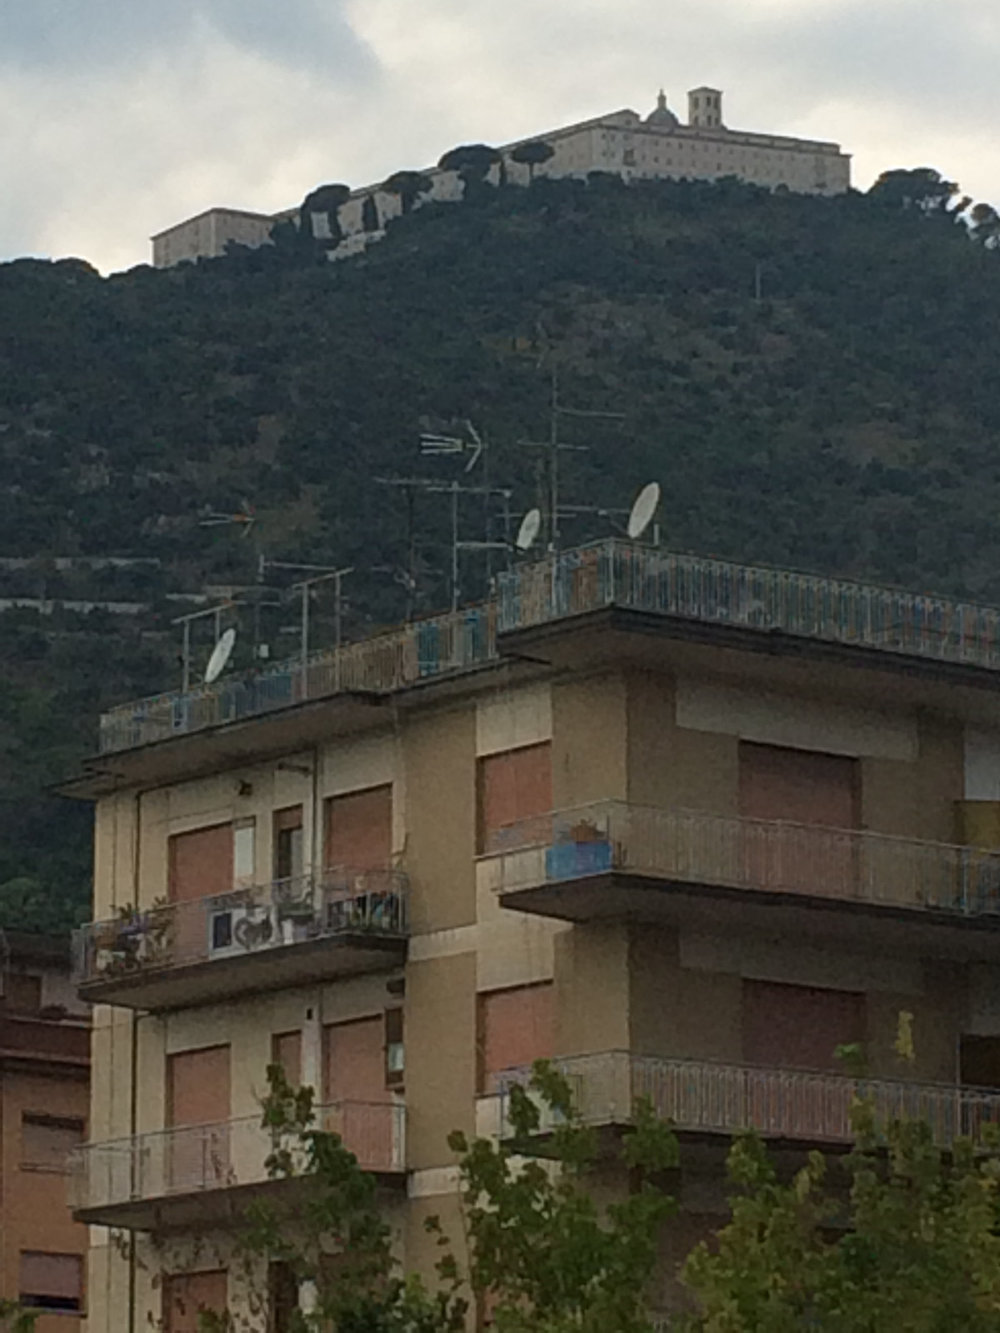 Monte Cassino perched on the mountain